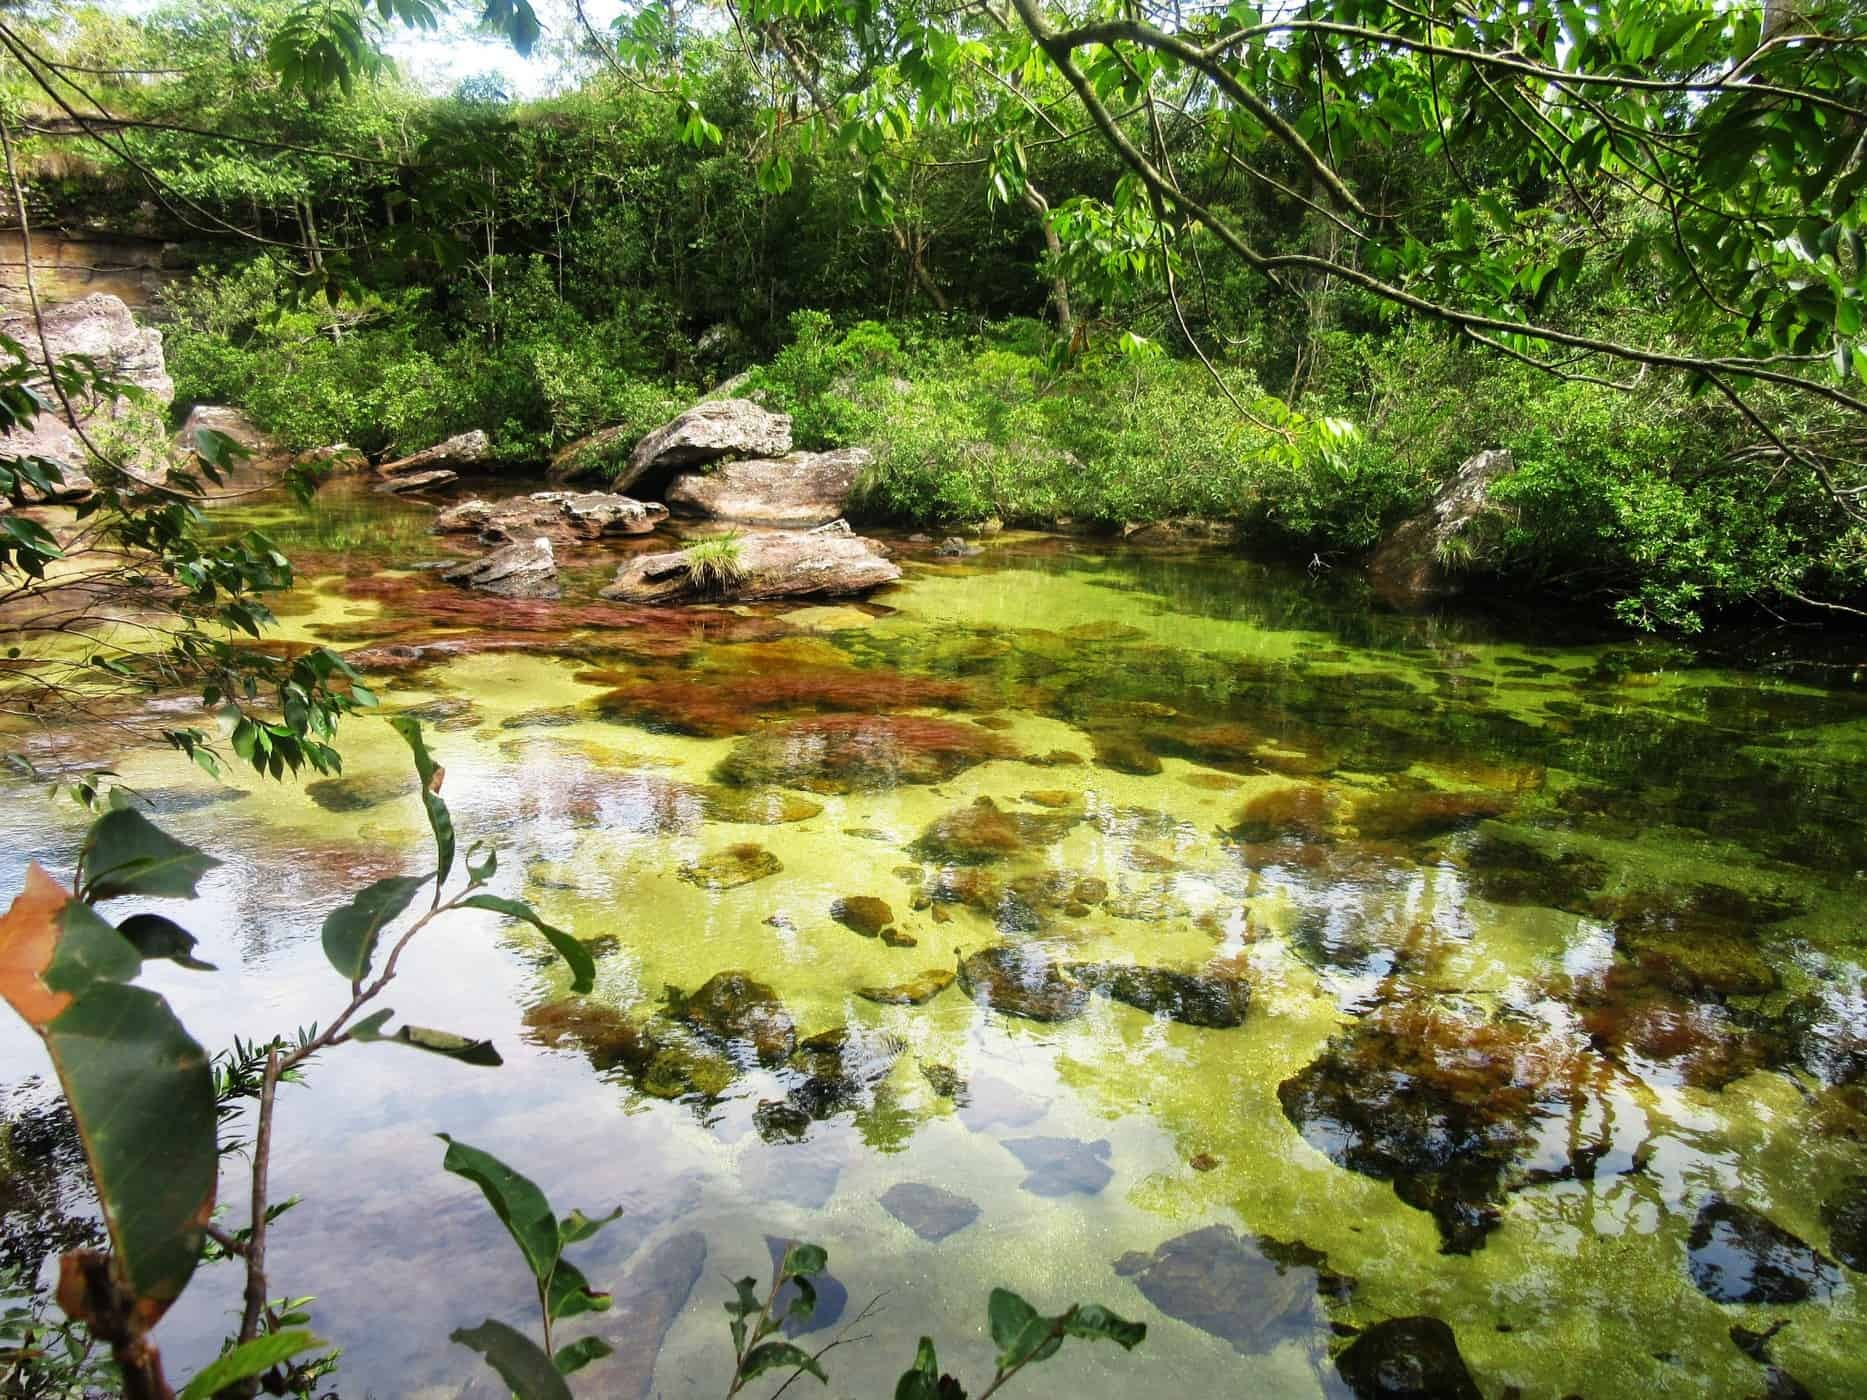 The water of the Caño Cristales is so clear you can see right through.